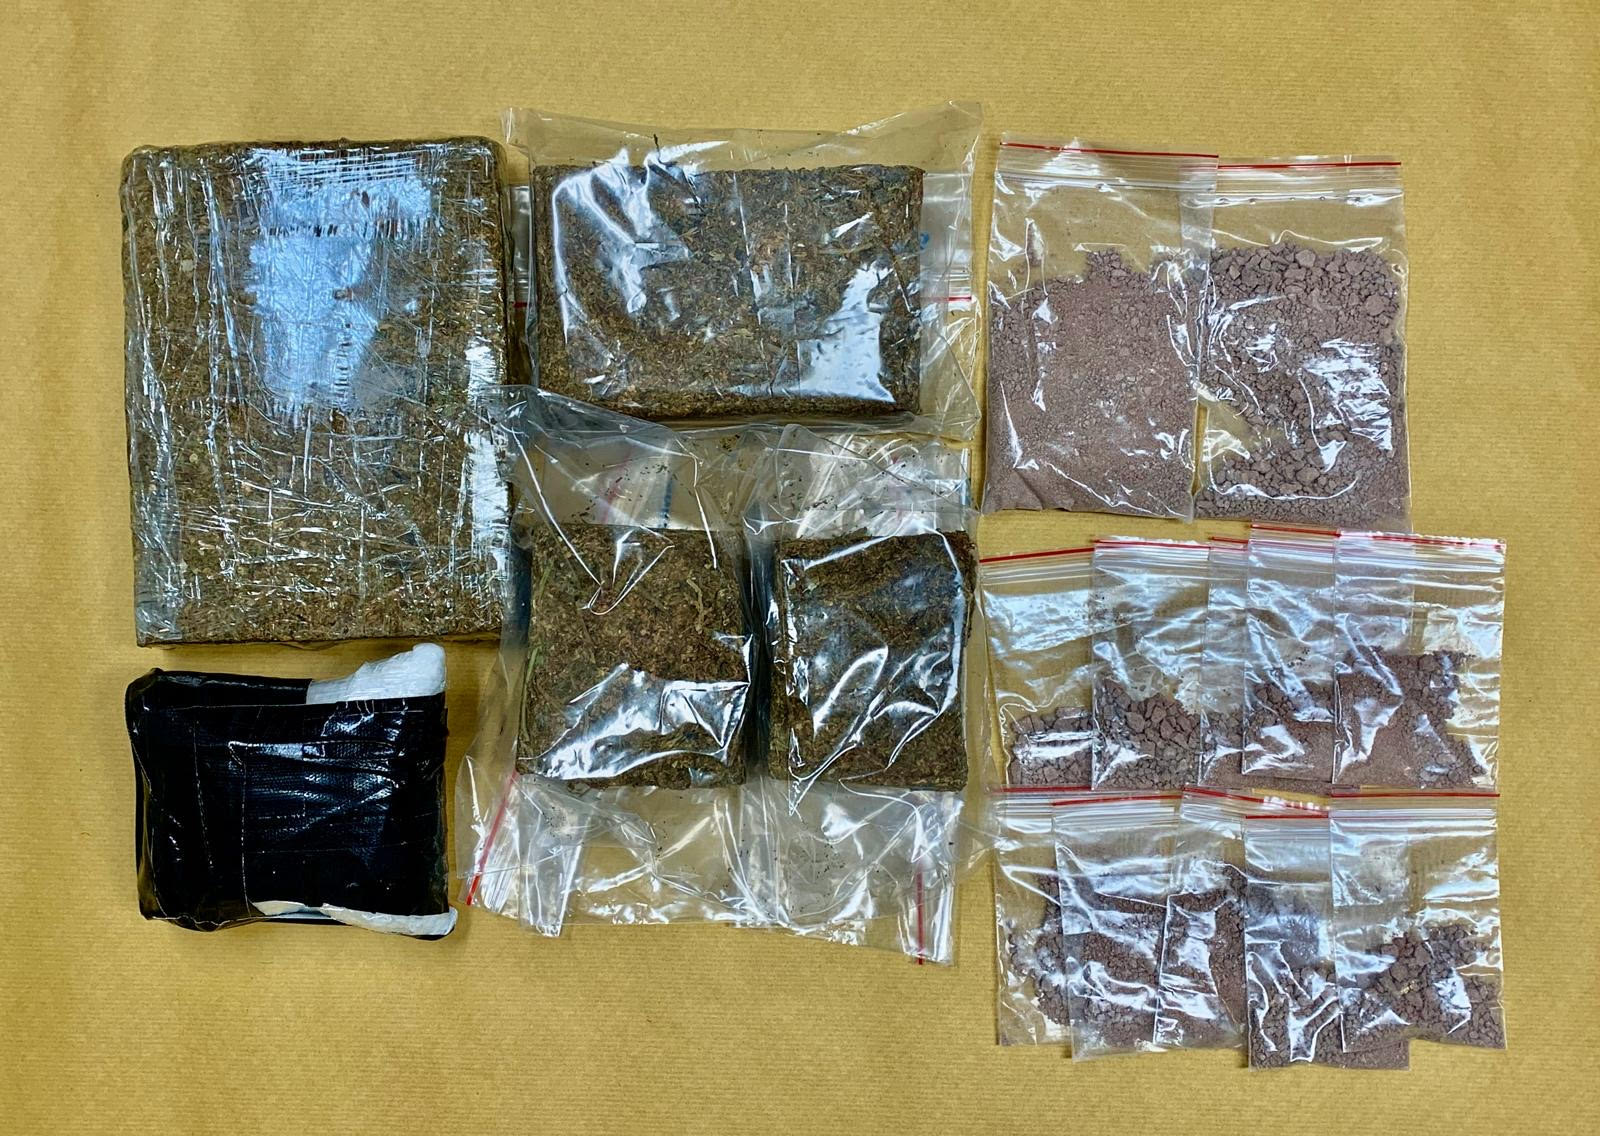 Photo 3 (CNB) – A total of about 550g of 'Ice', about 291g of heroin, and about 2kg of cannabis were seized from the operations in the vicinity of Ang Mo Kio Ave 5, Ang Mo Kio Ave 10, and Bukit Panjang Ring Road.